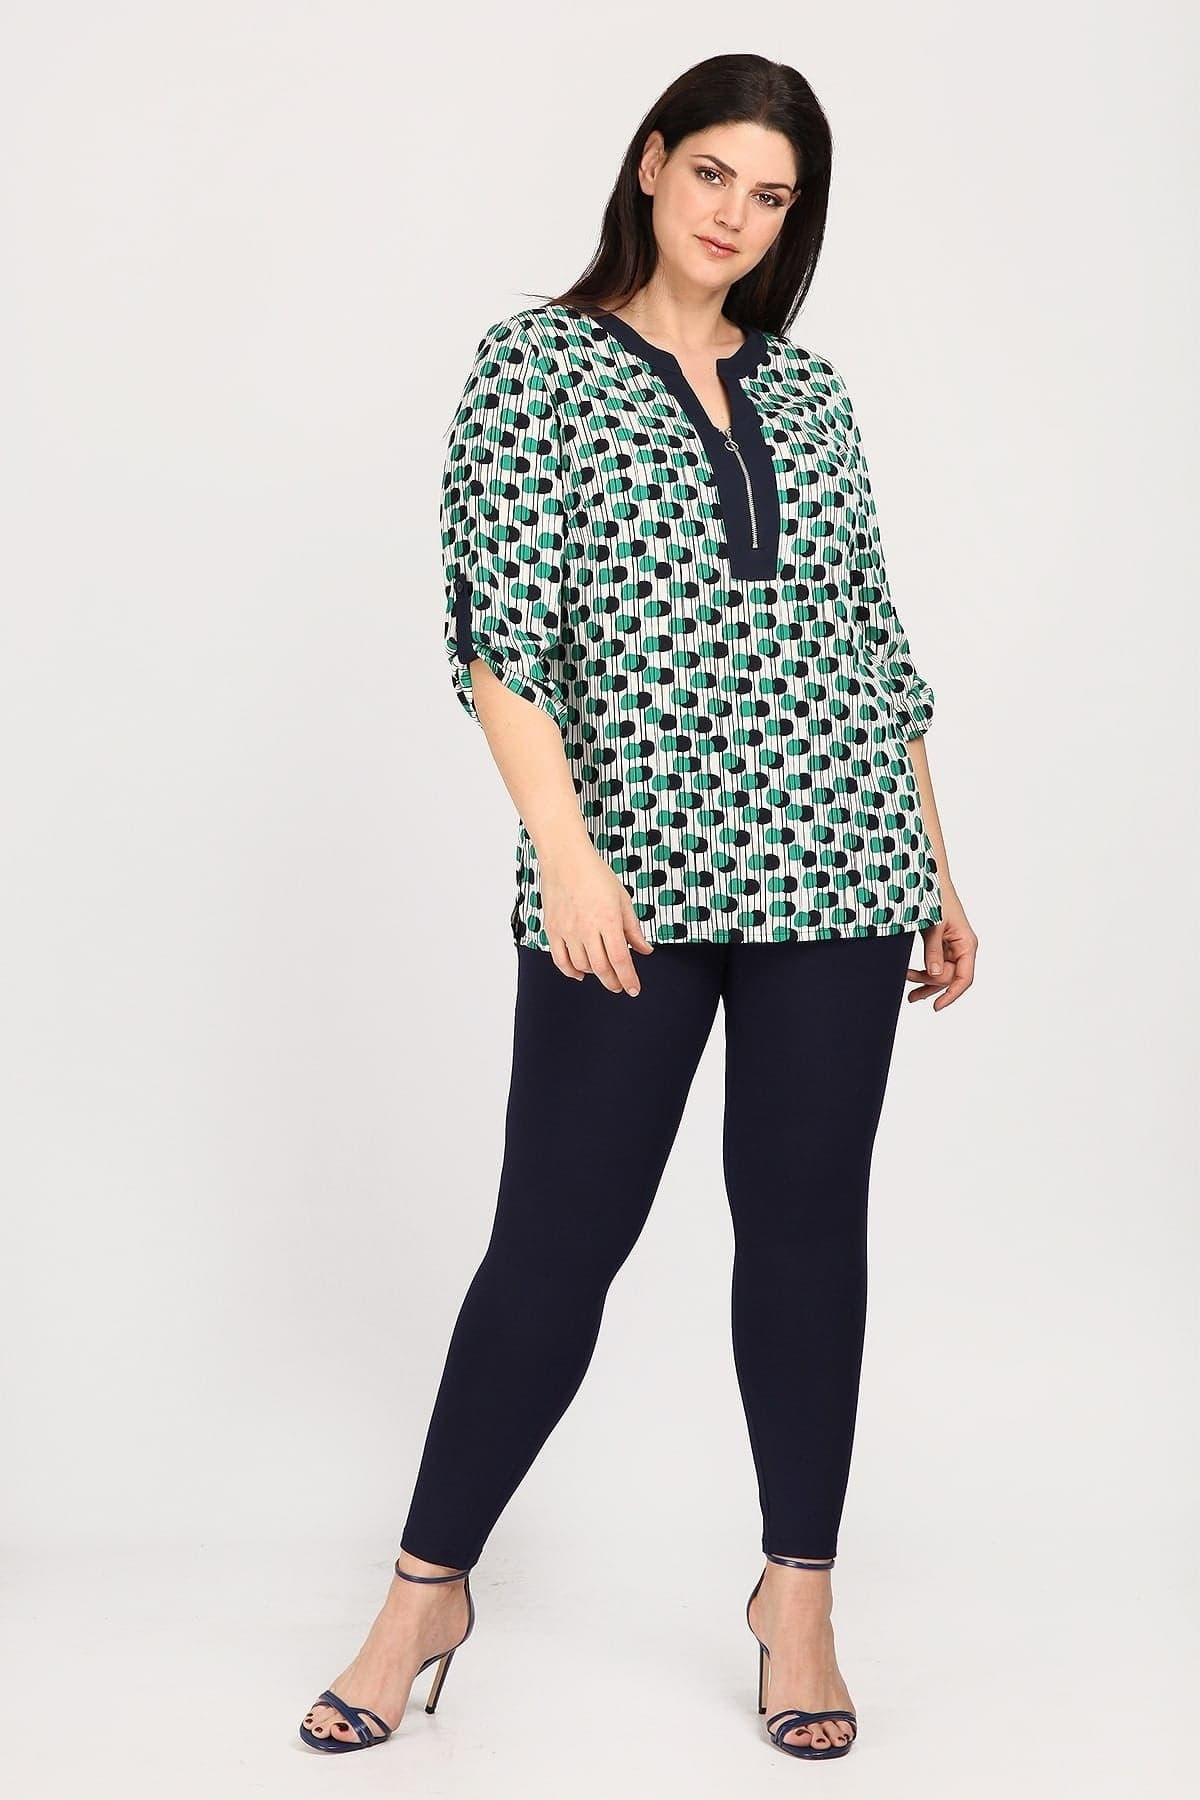 Printed blouse with zip on the neckline